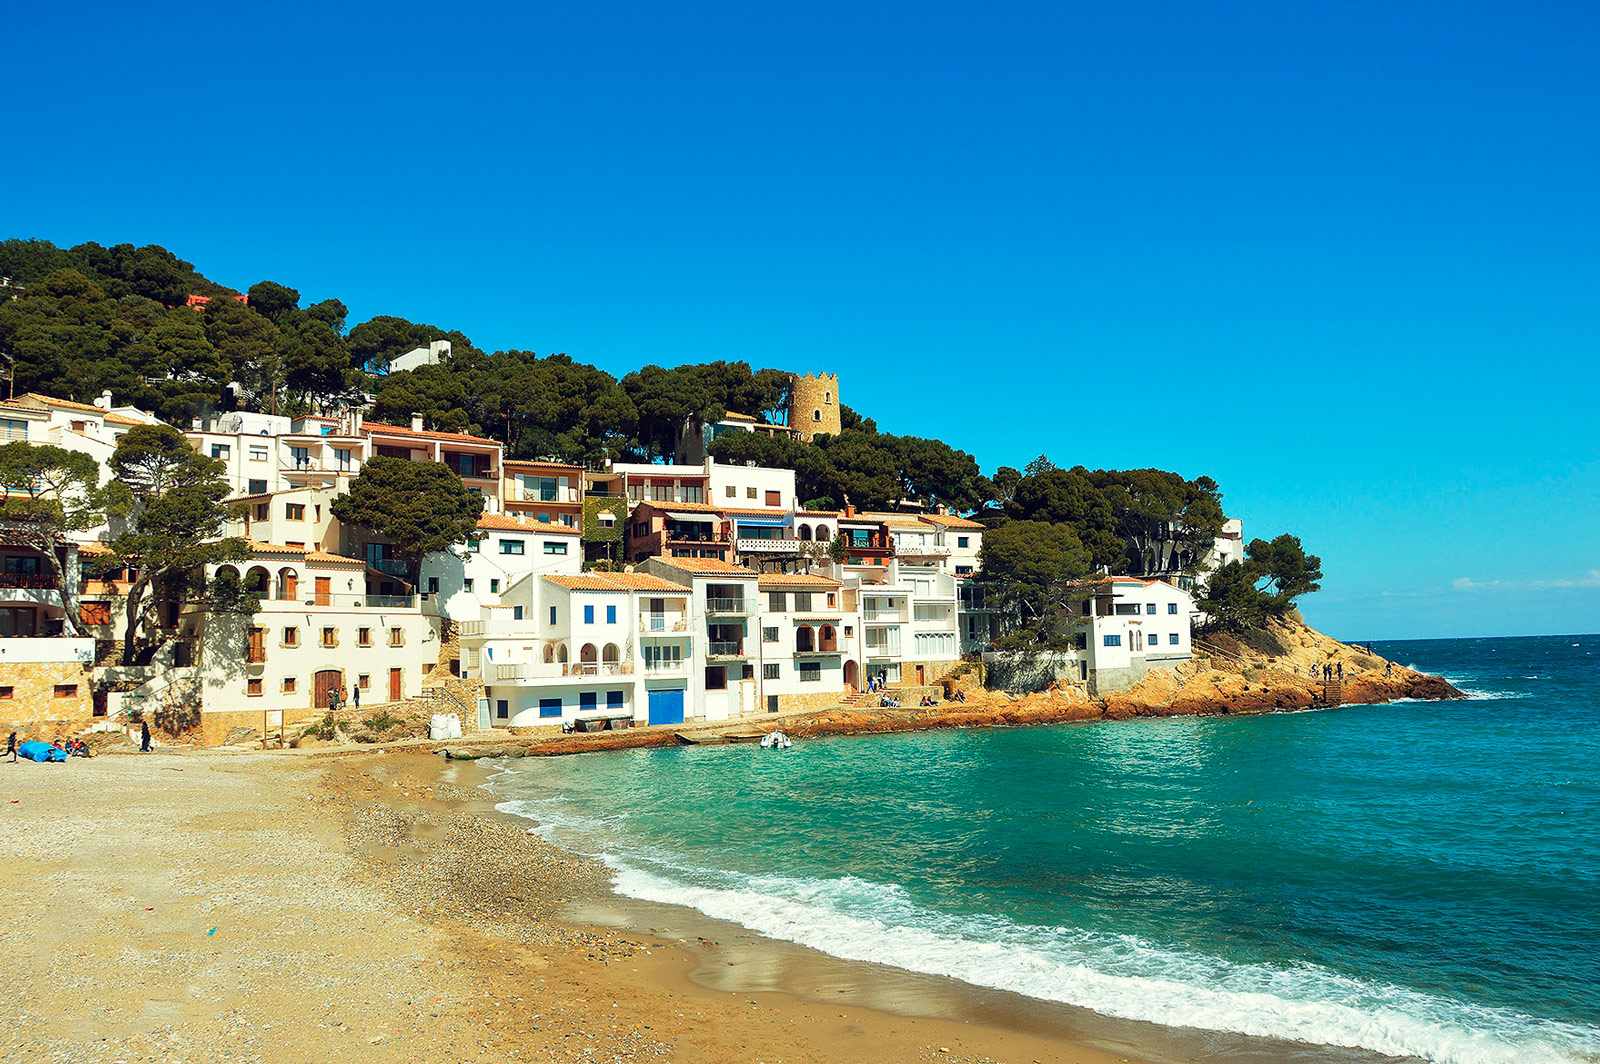 A hotel to visit the best beaches of the Costa Brava